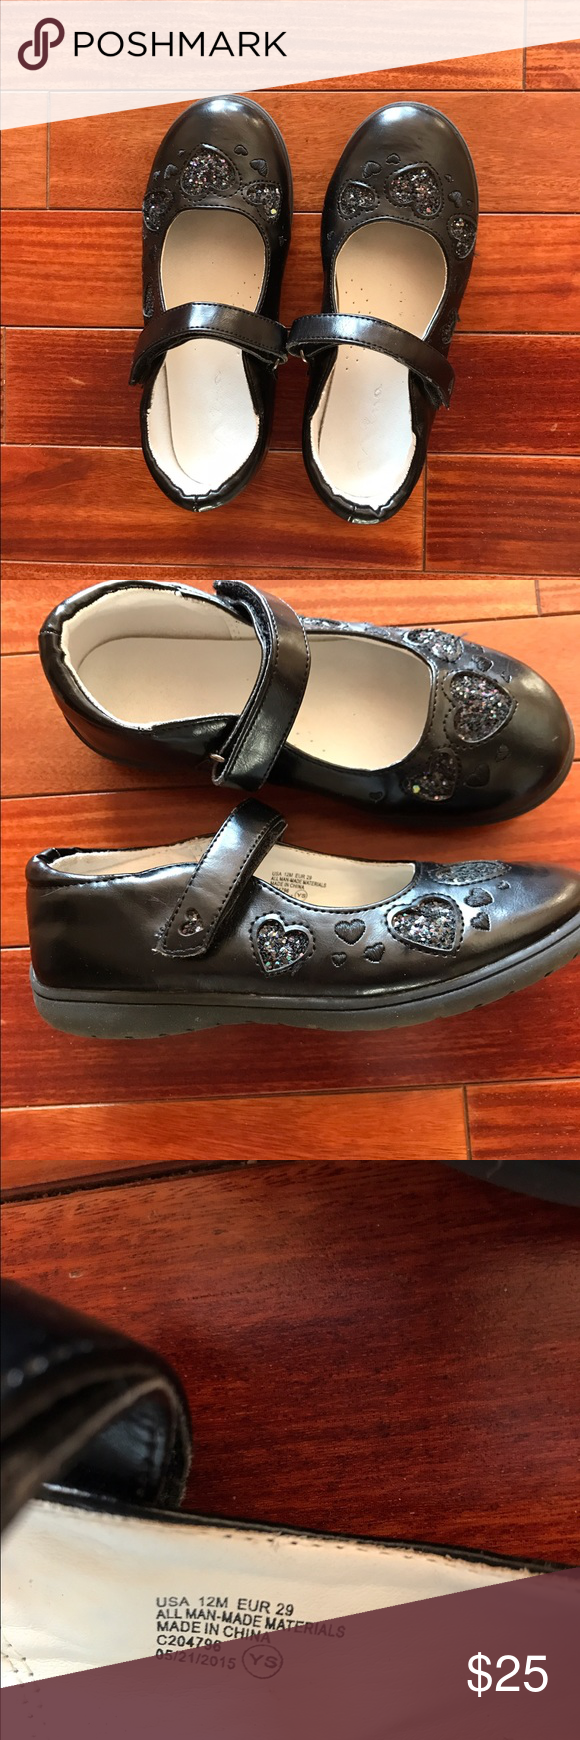 Girls Mary Jane's Nearly brand new. Only worn a couple times.  Cute Mary Jane style shoes with velcro strap for easy wear. Very durable, great quality shoe by Nina. Nina Shoes